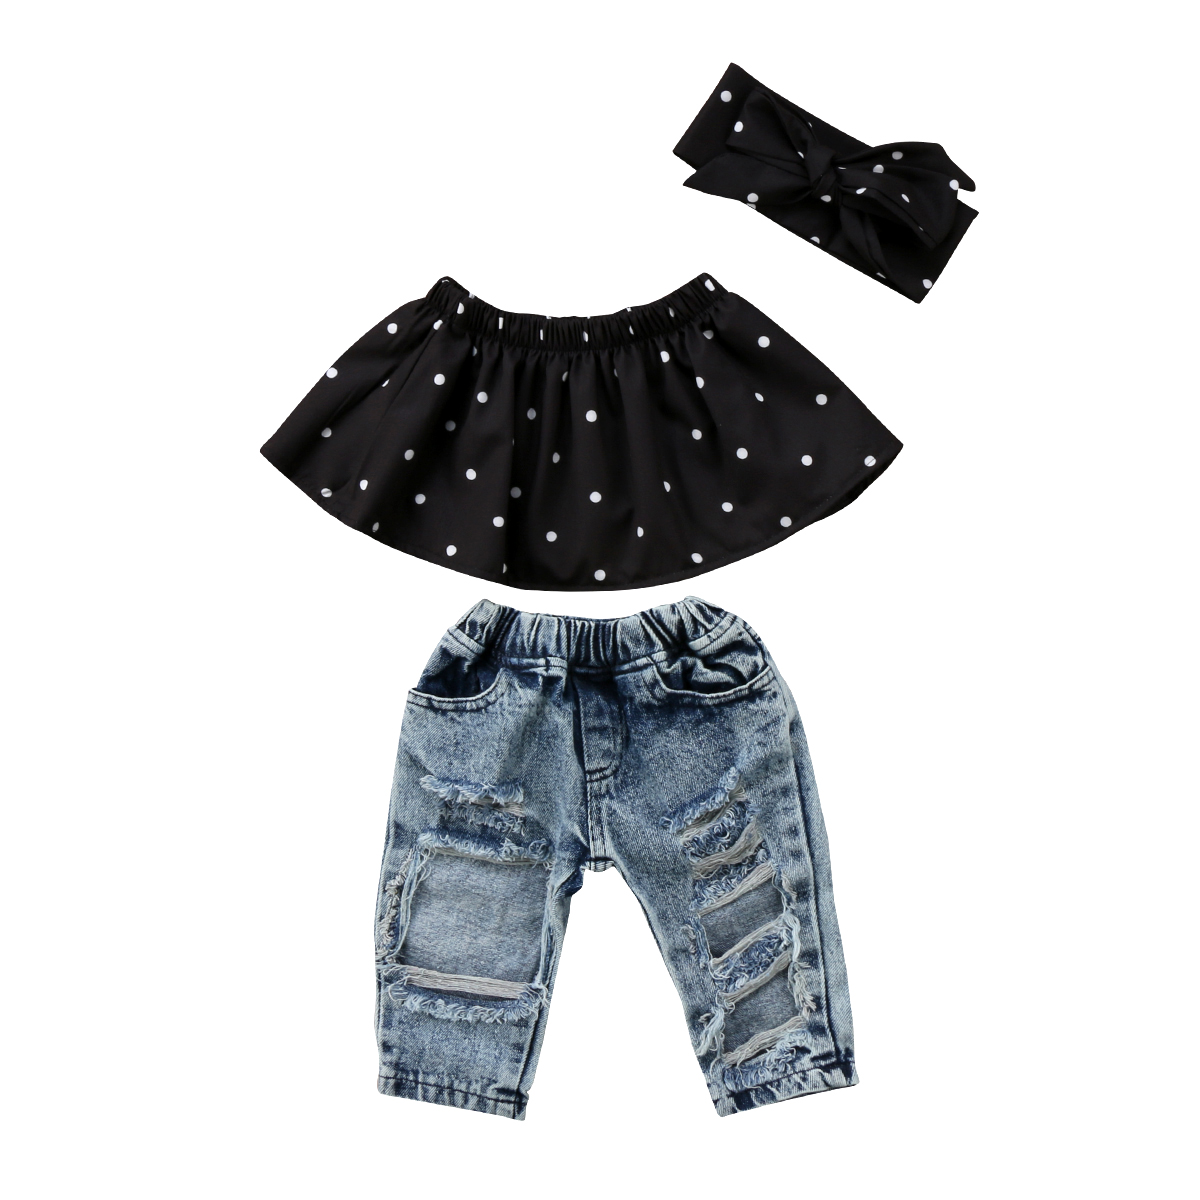 New Style Infant Baby Girls Clothes Summer Sleeveless Dot Tube Top +Hole Jeans +Headband 3pcs Outfits Clothes Set creative mustache style infant pacifier